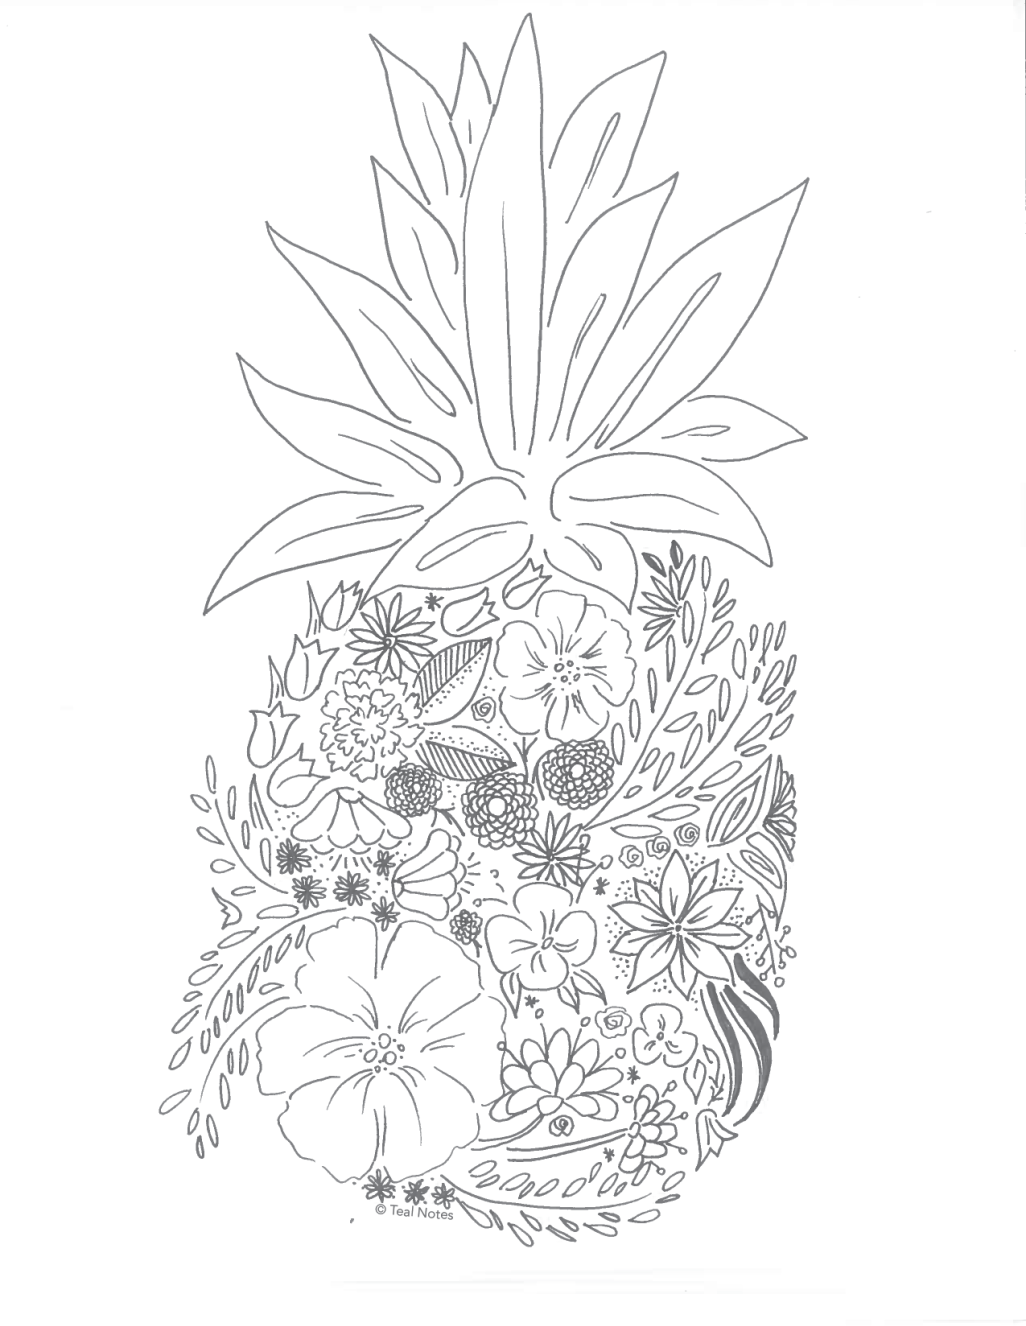 FREE Adult Coloring Pages 35 Printable Coloring